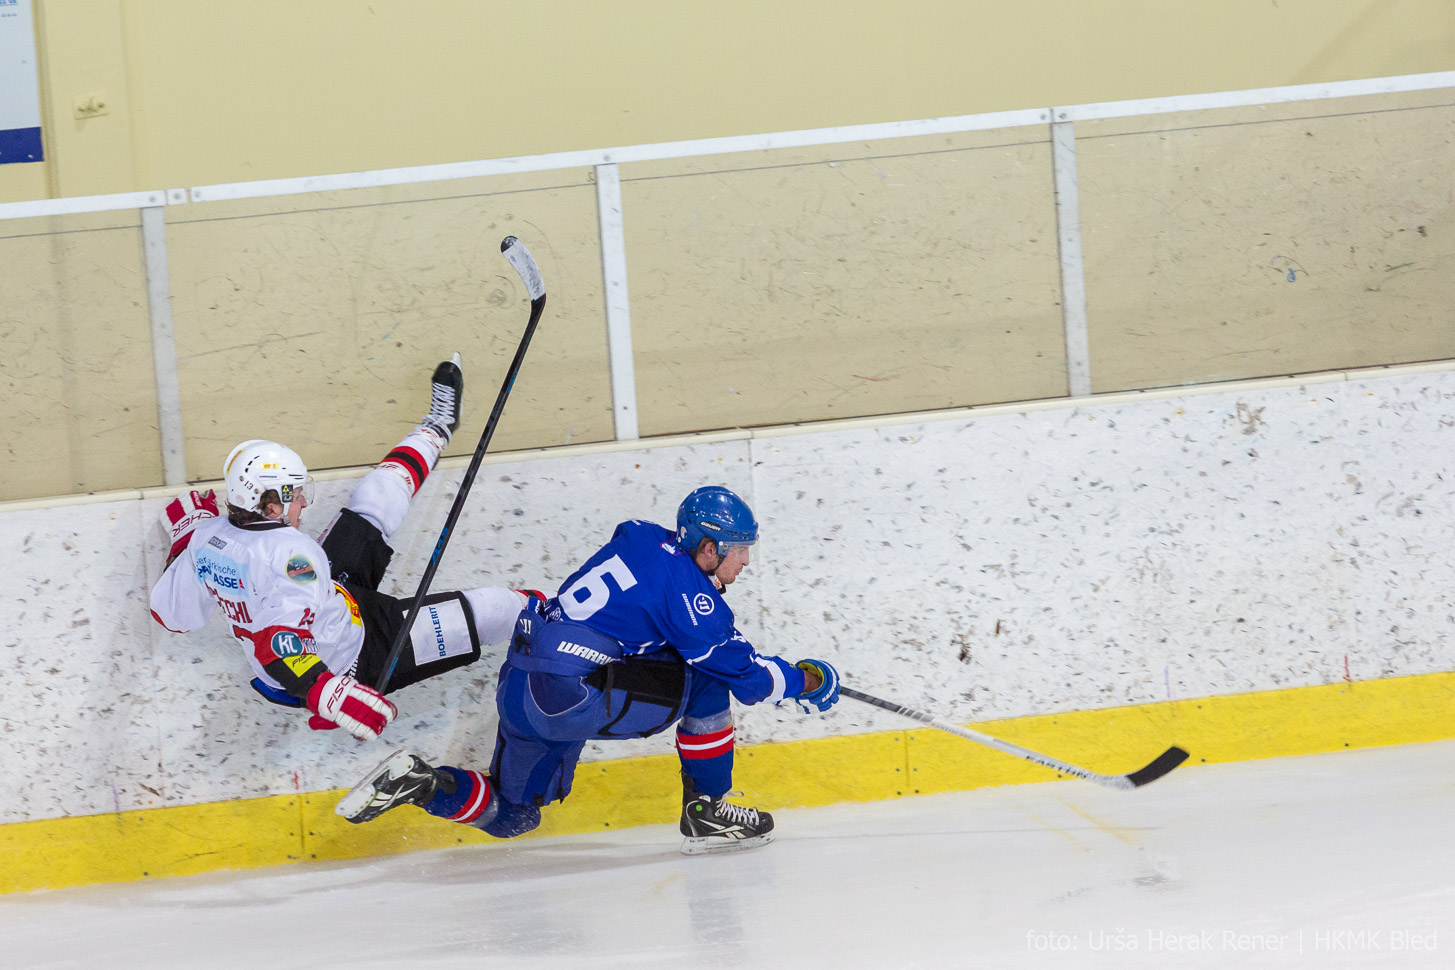 HKMK Bled vs. HC Steelers Kapfenberg